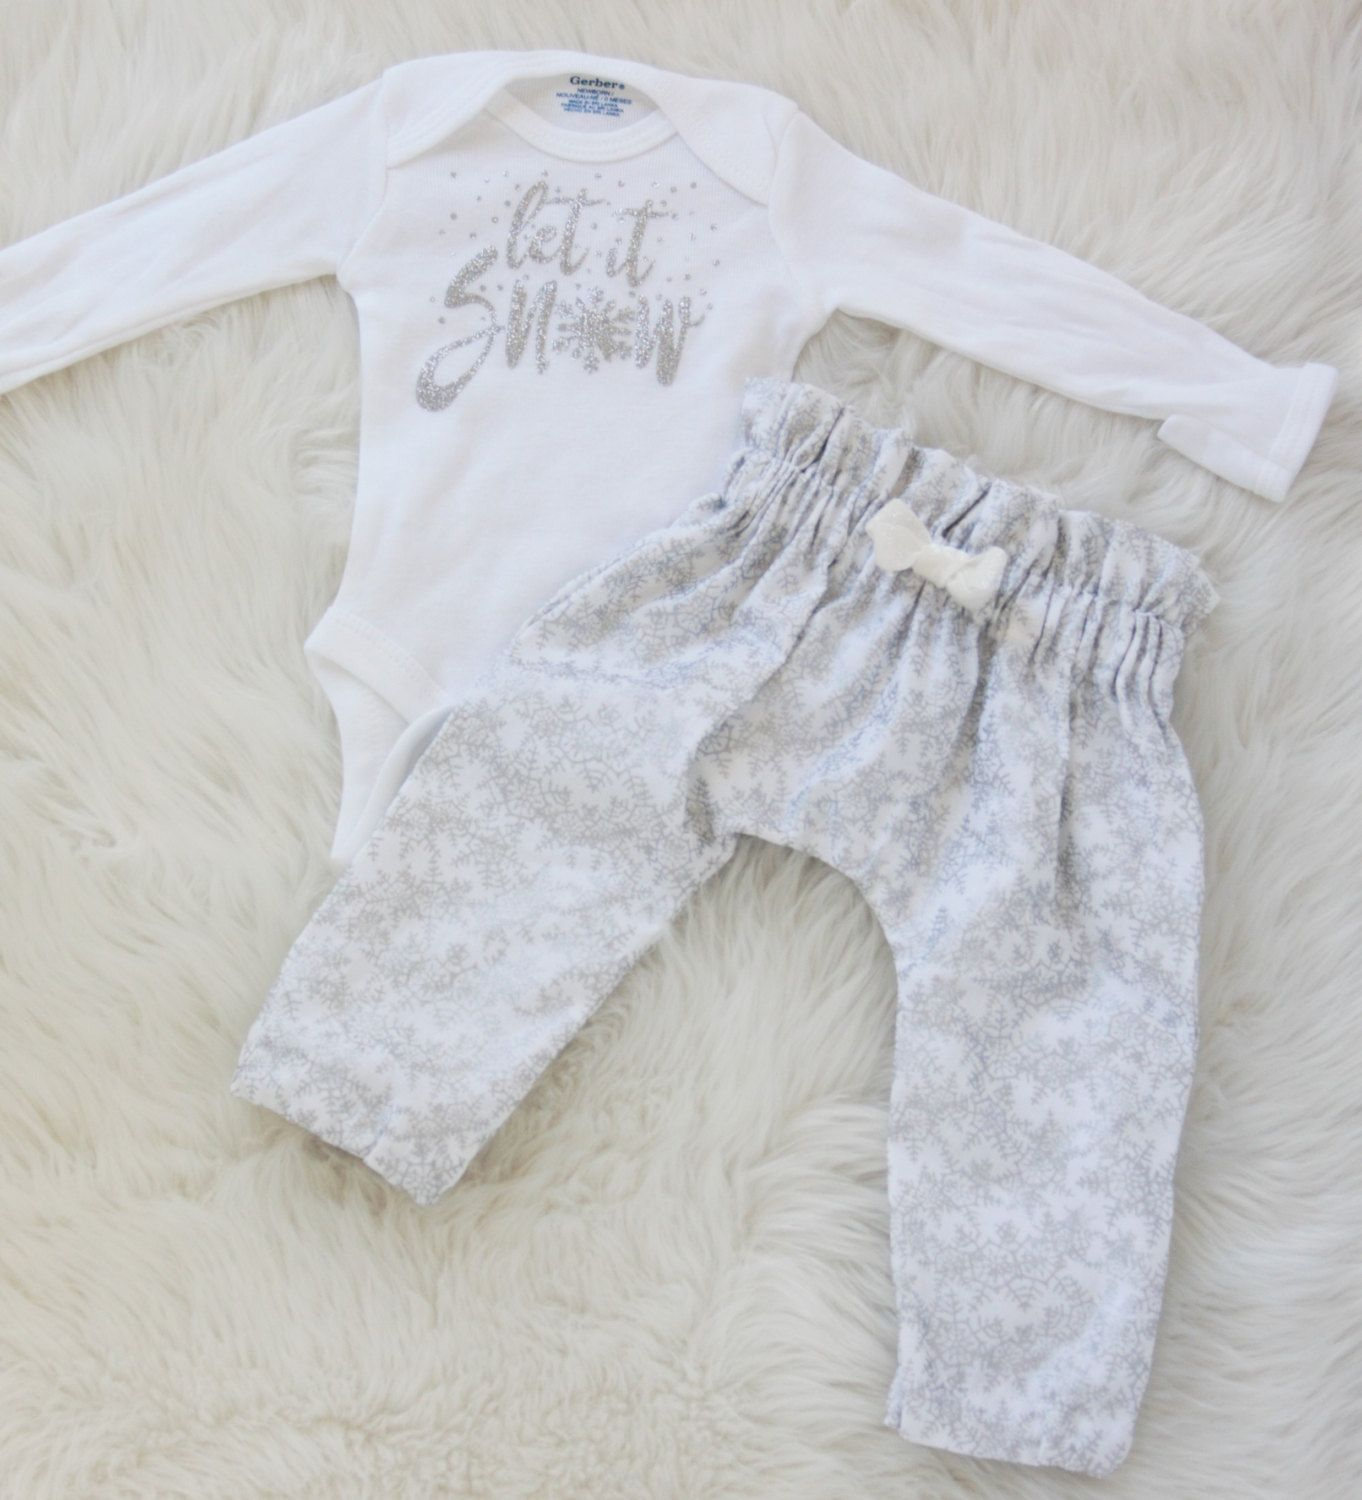 0bdbdf1ded9f Let it snow outfit Christmas outfit coming home outfit baby girl ...